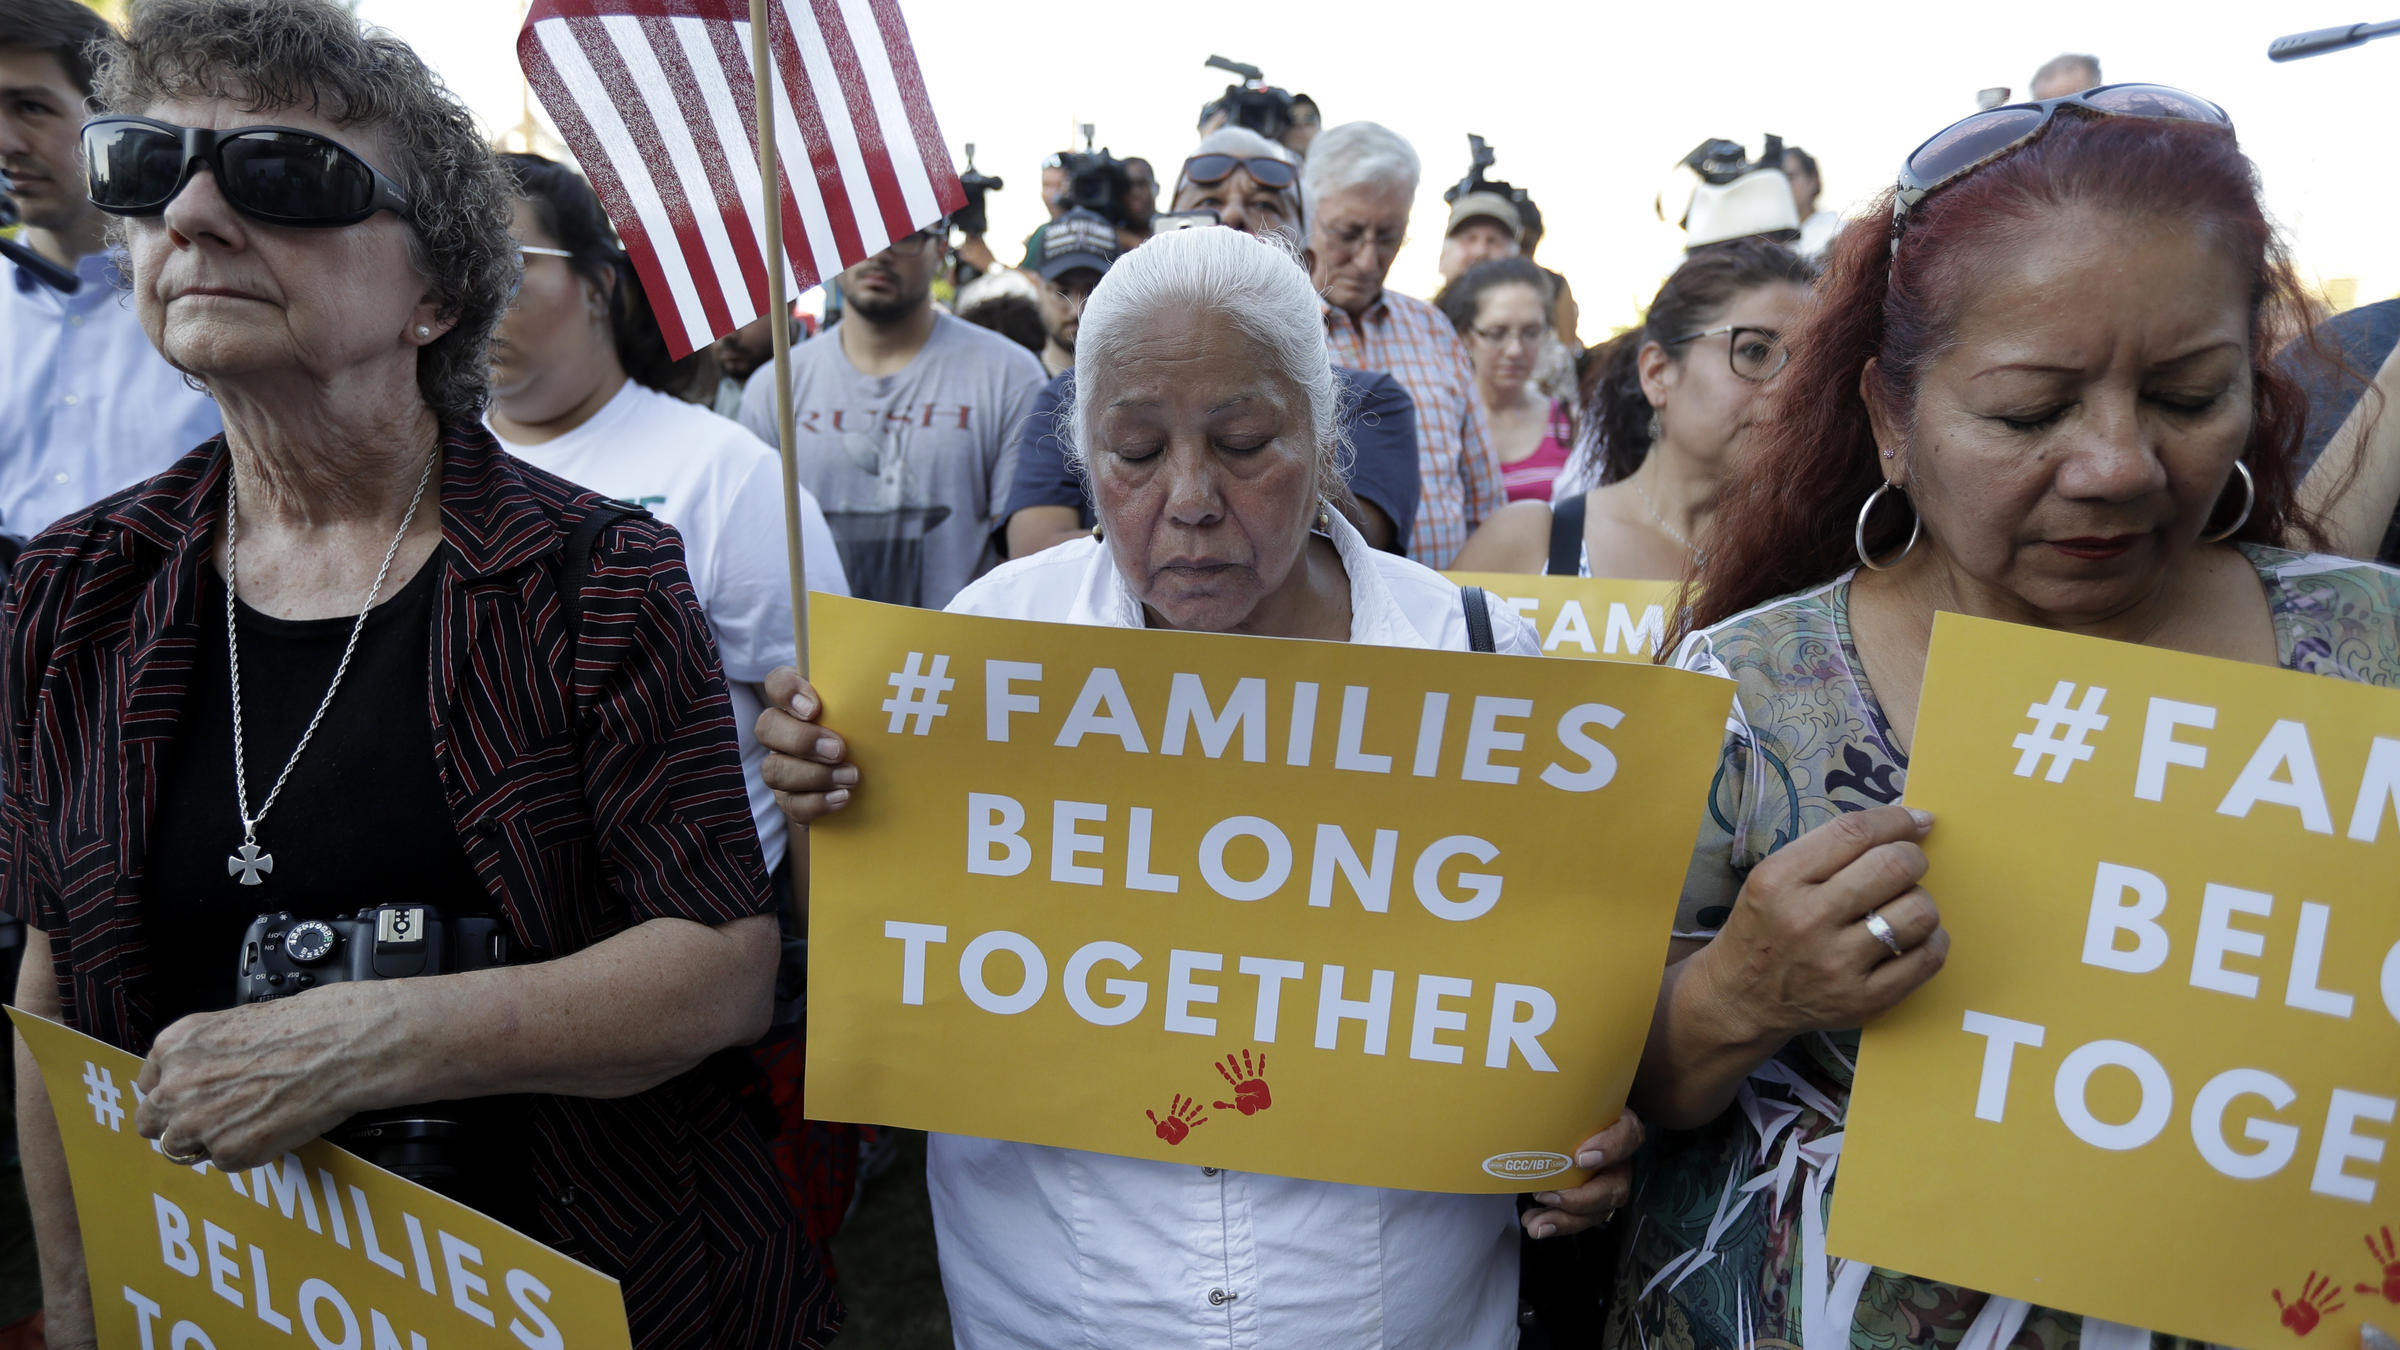 Trump's Decision To Separate Families Heats Up Immigration ...